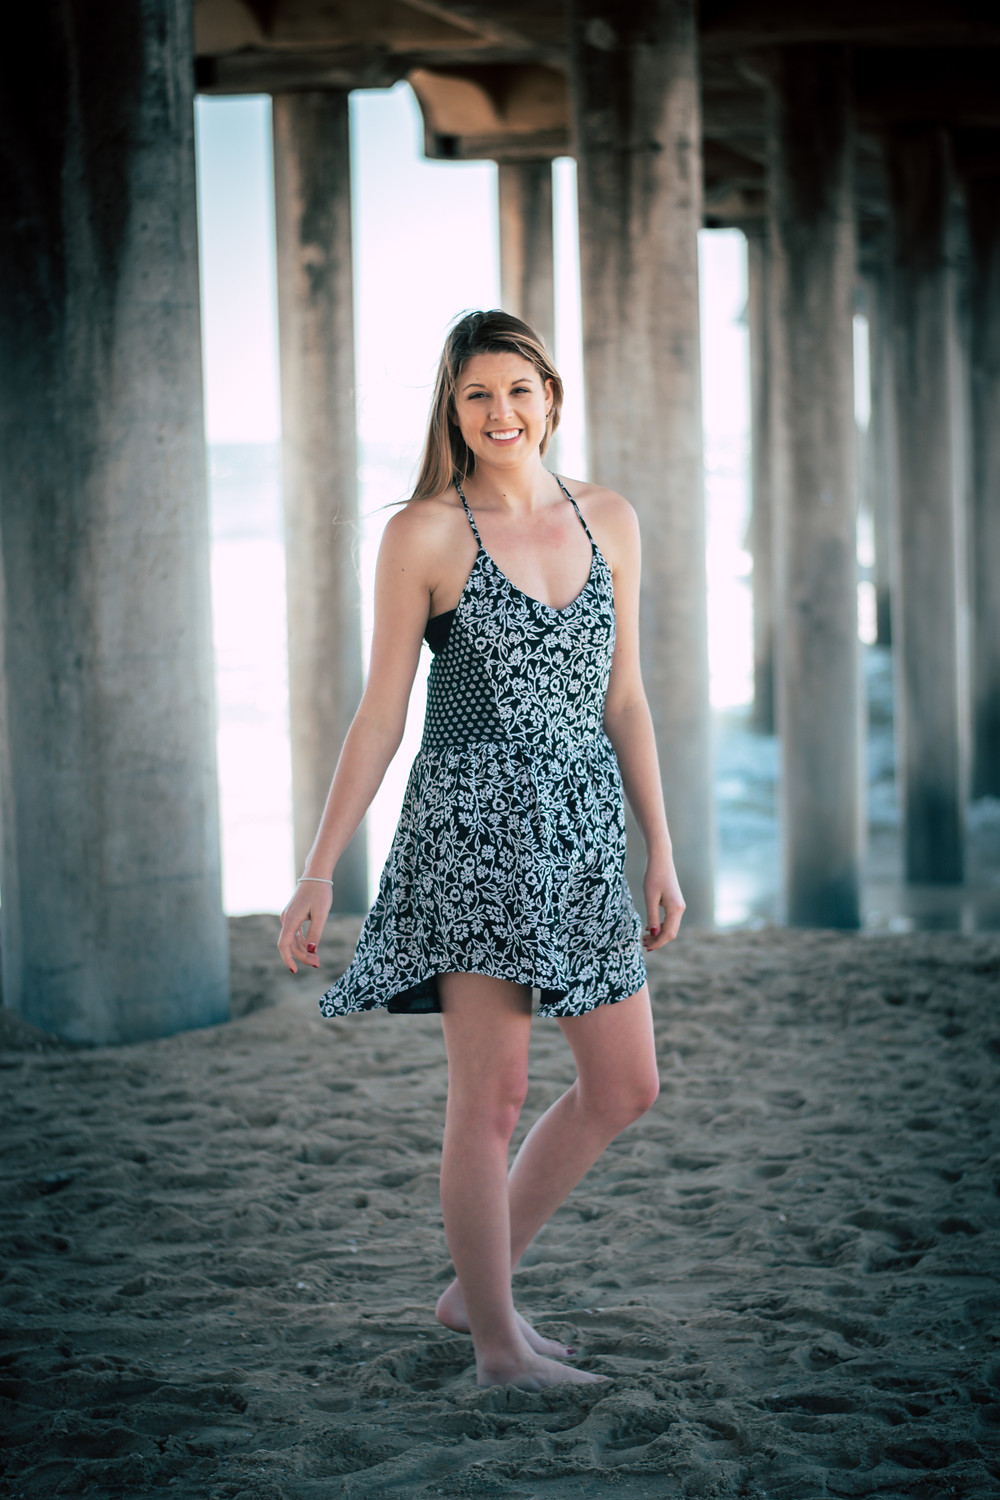 Holly Canon Travel and Lifestyle Blog The Bearded Bousman Photo Co Disneyland and Huntington Beach Inspyre Boutique dress under Pier 13